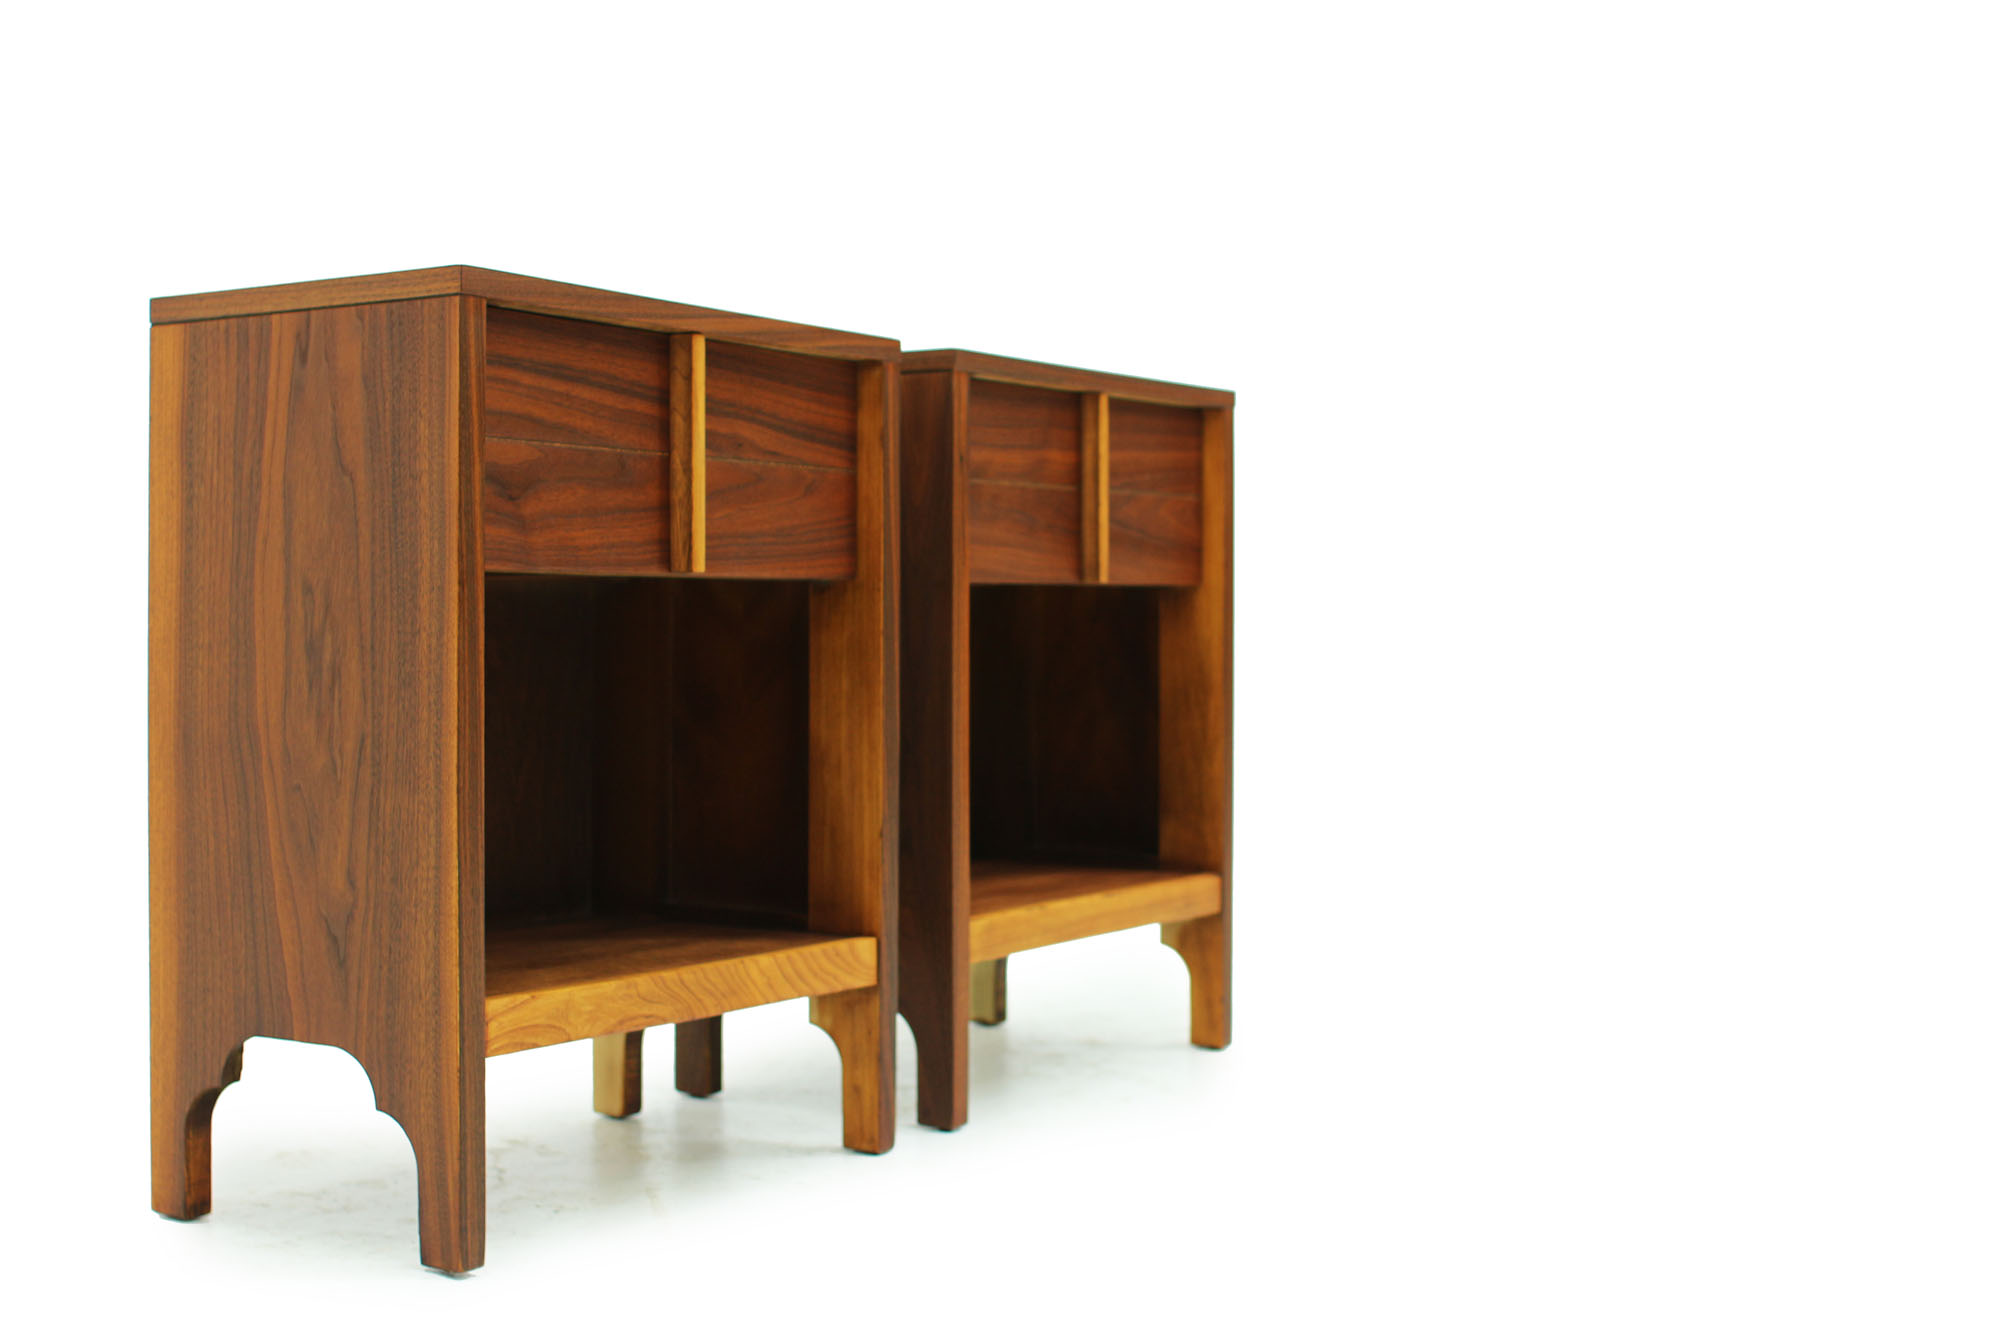 Pair of Walnut Bedside Night Stands Mid century modern design (3).jpg